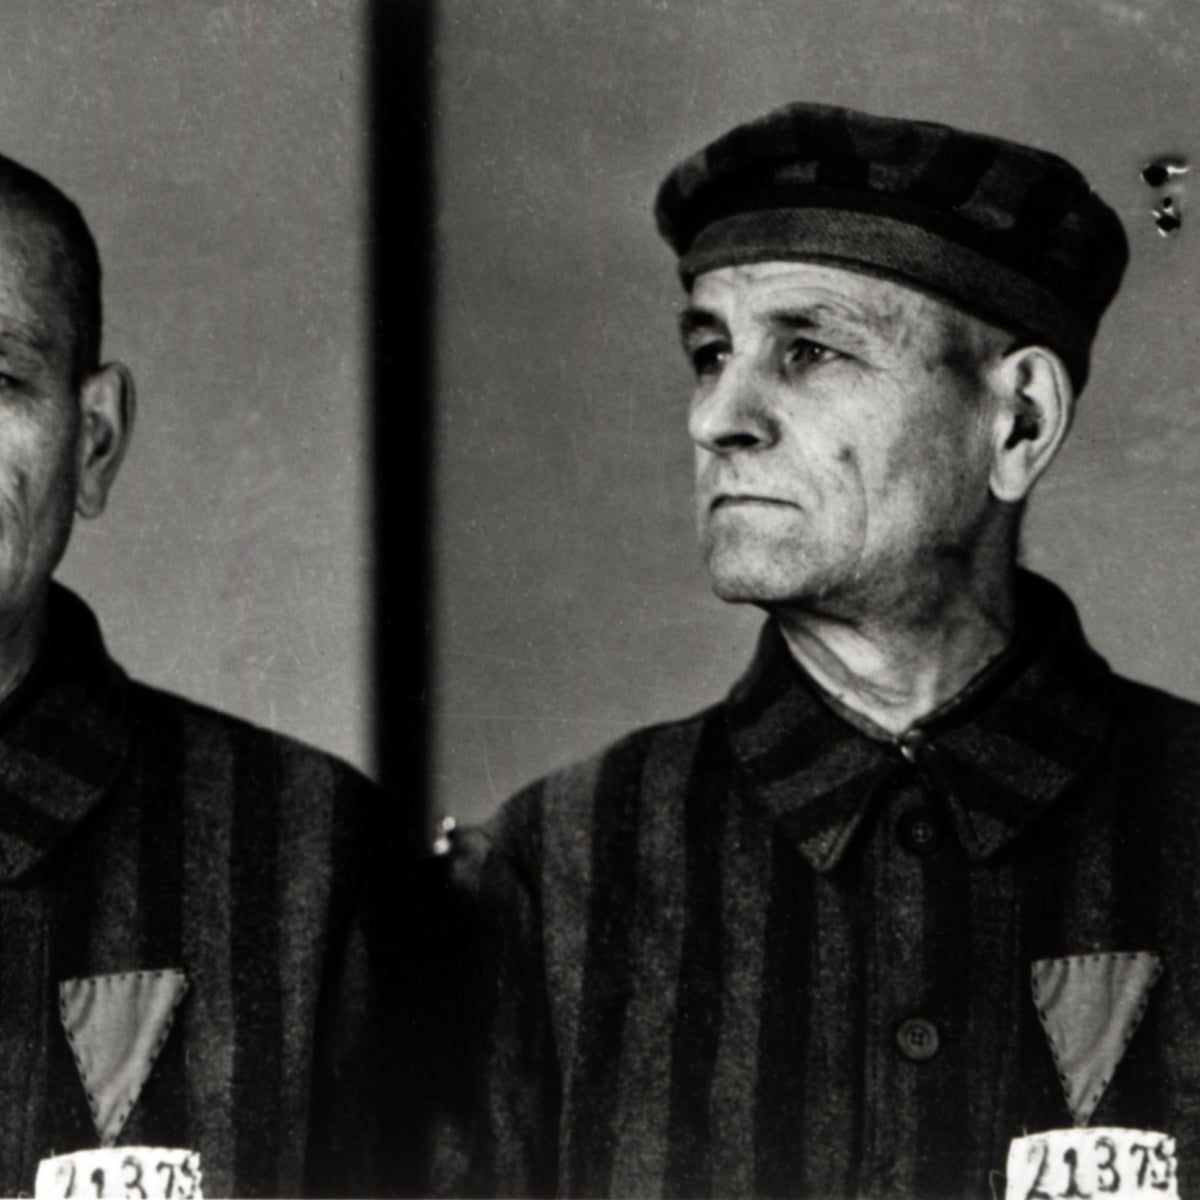 Auschwitz prisoner No. 22375, a homosexual, photographed in 1942.